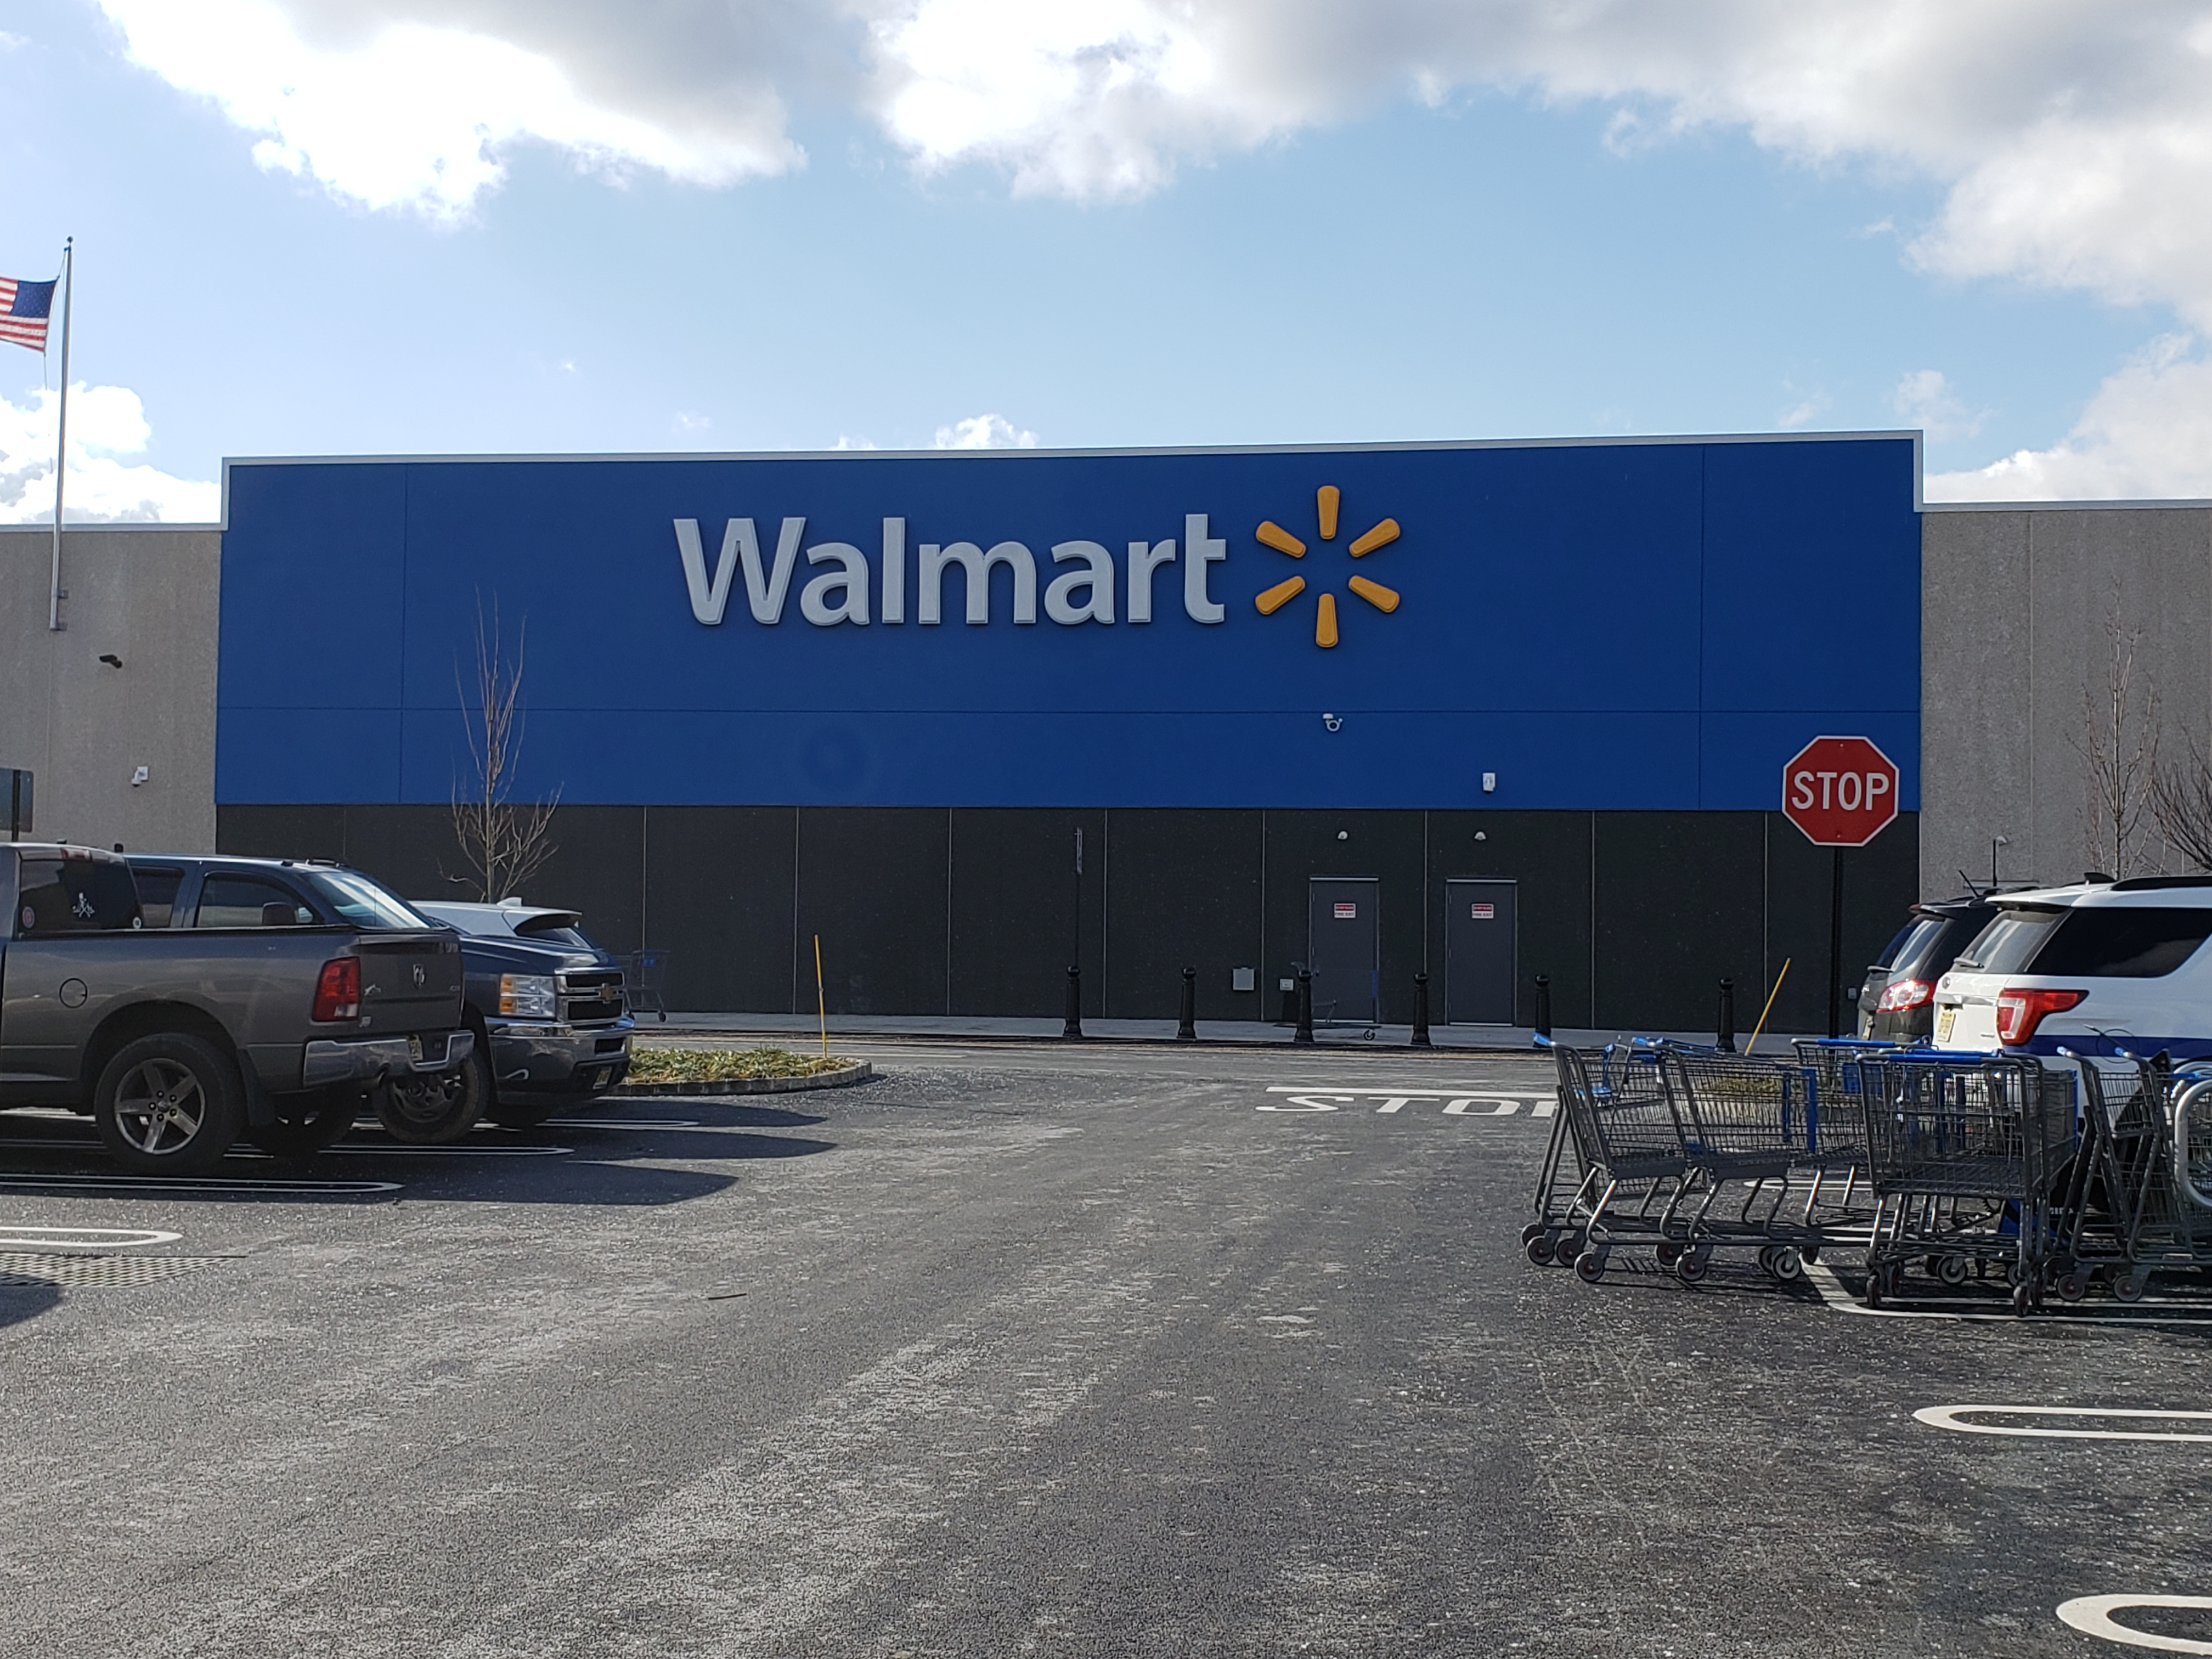 Walmart at Ledgewood Commons, Roxbury, NJ